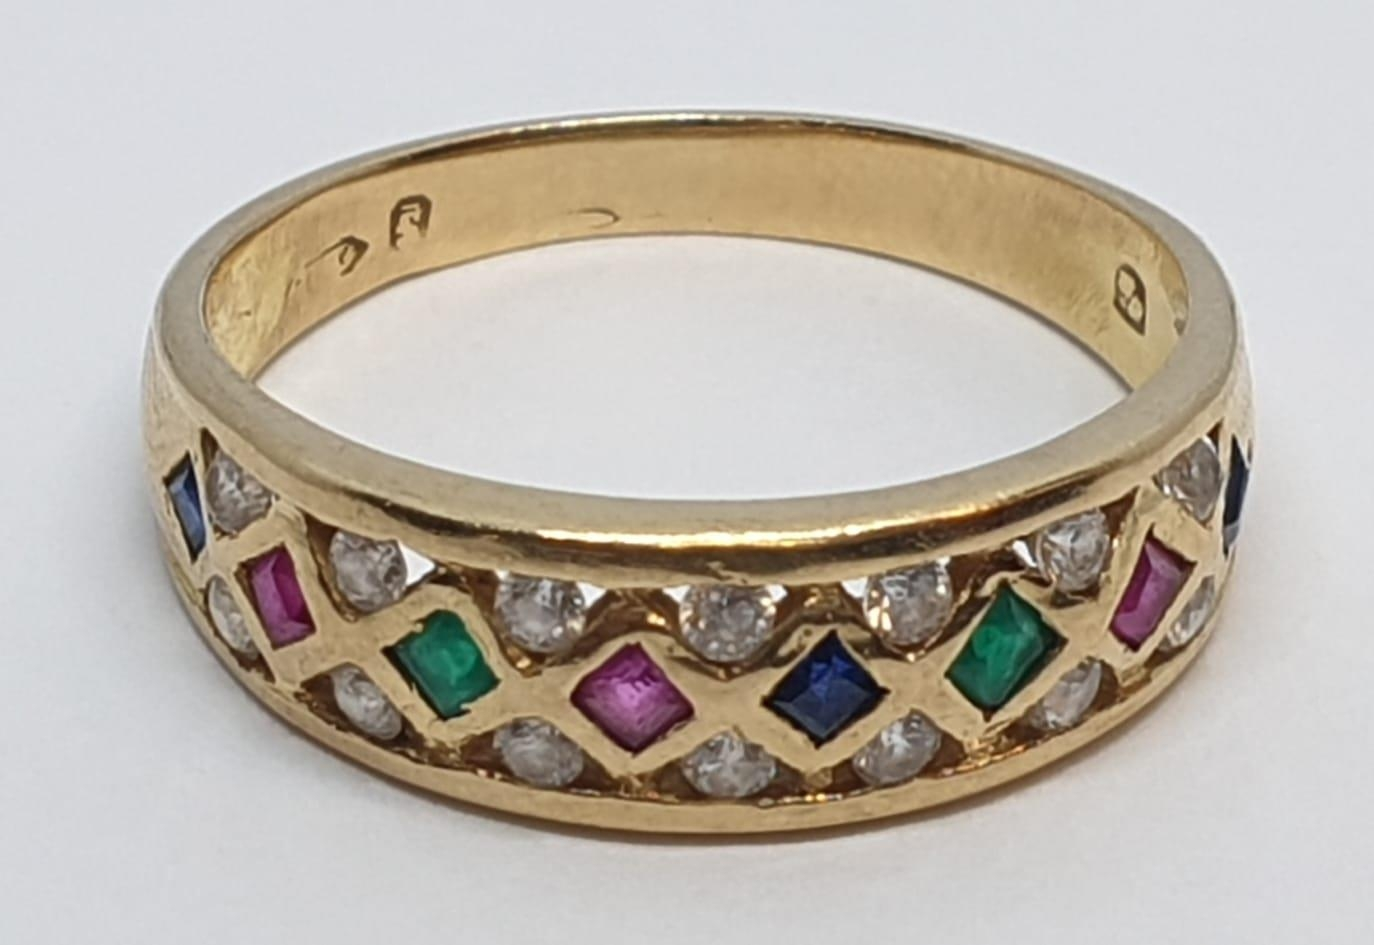 18ct Yellow gold diamond ruby, sapphire and emerald set fancy ring. Weight 4.3g, Size S. - Image 5 of 10